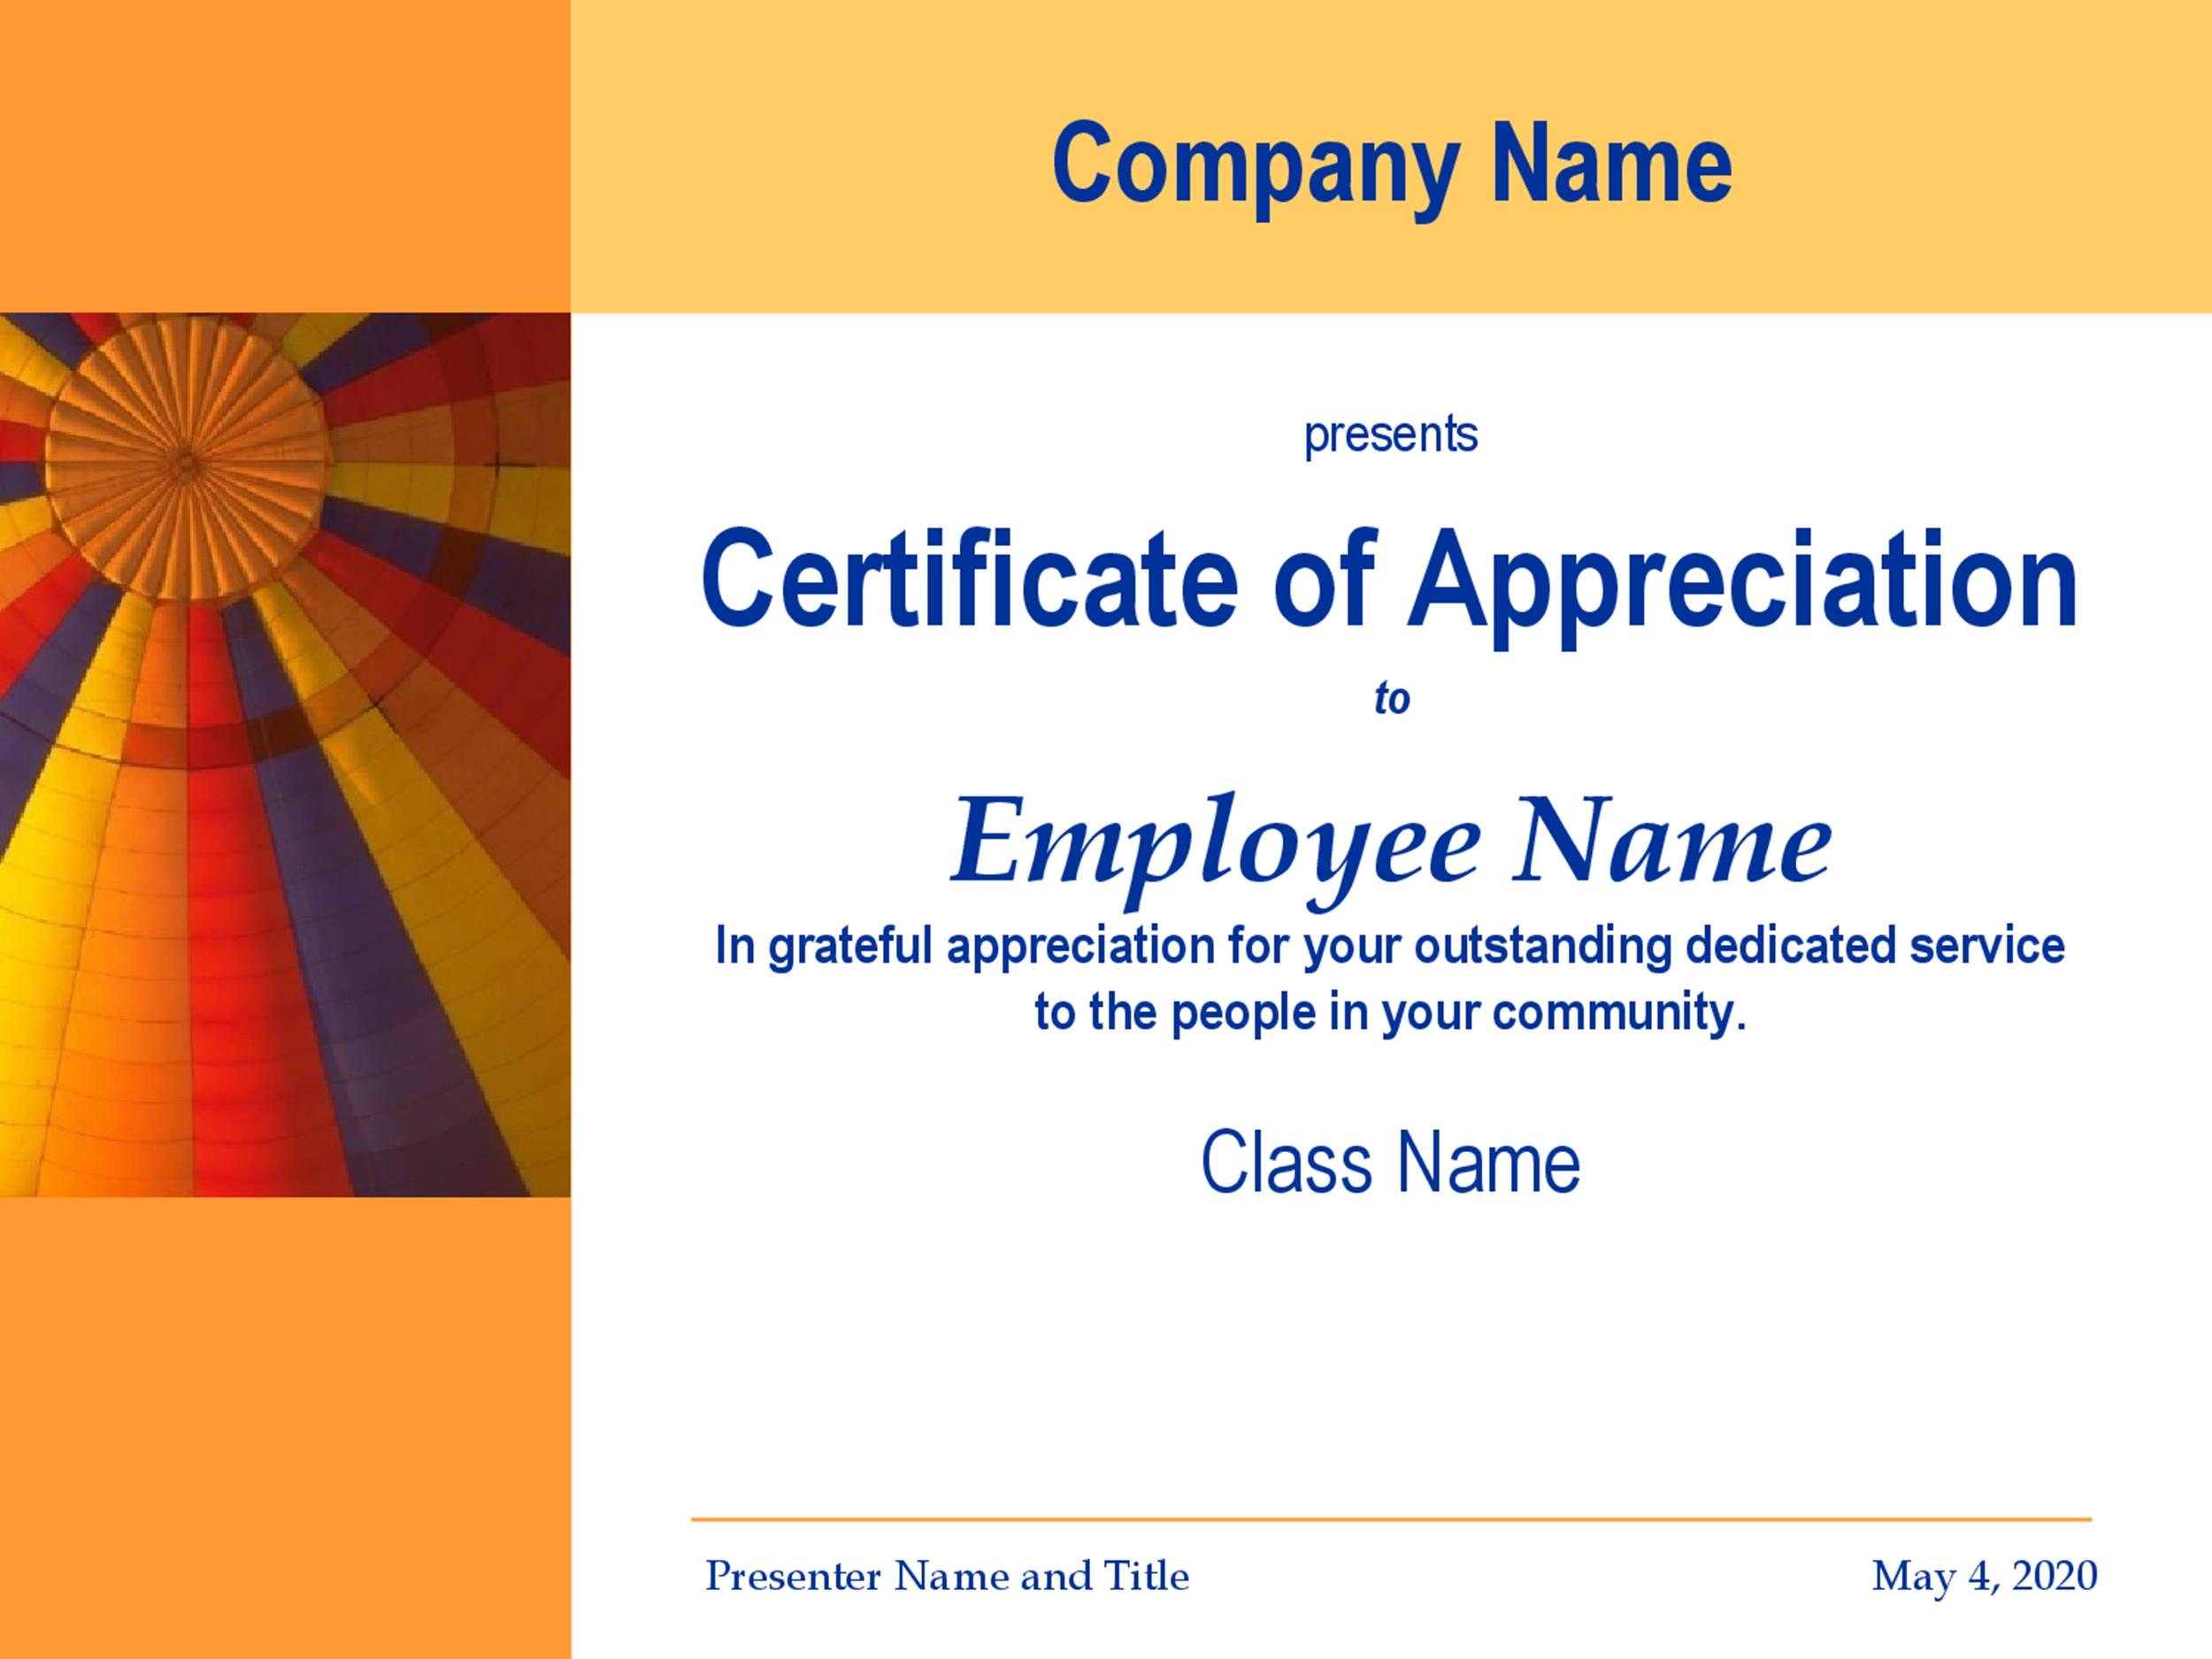 Free Certificate of Appreciation 26